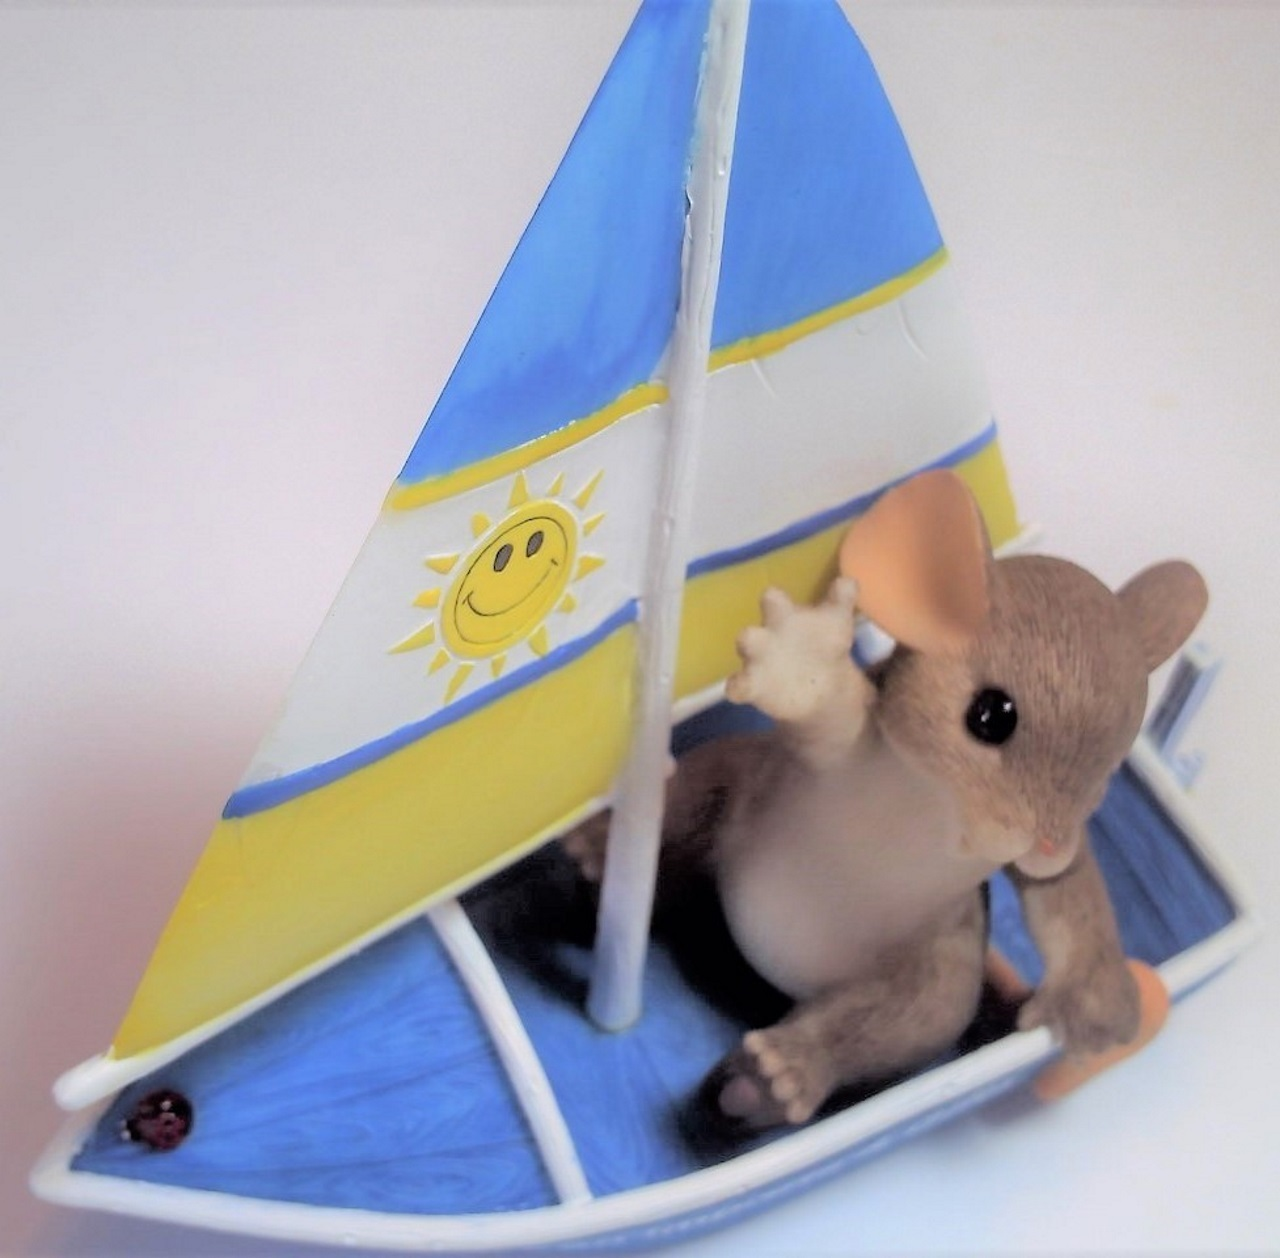 Charming Tails Sailing By to Say Hi - S.S. European Imports & Gifts 98/426